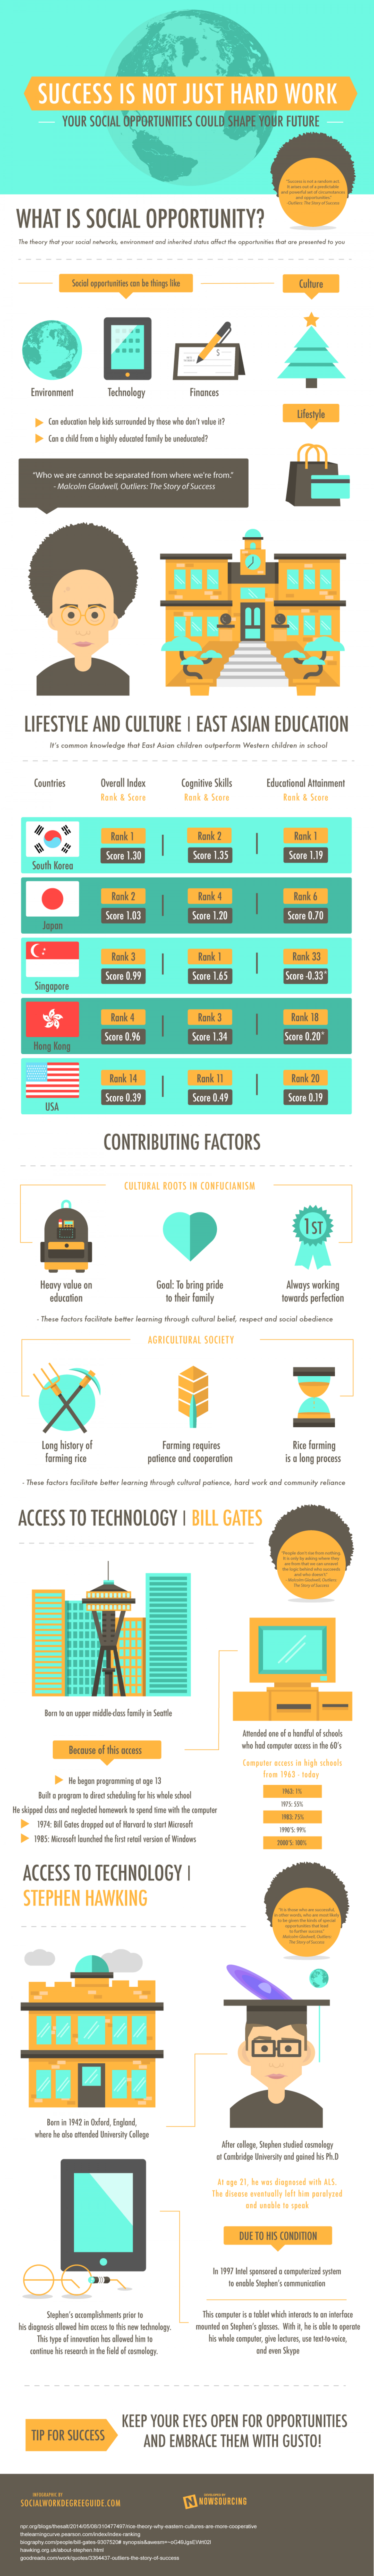 Success is not Just Hard Work Infographic